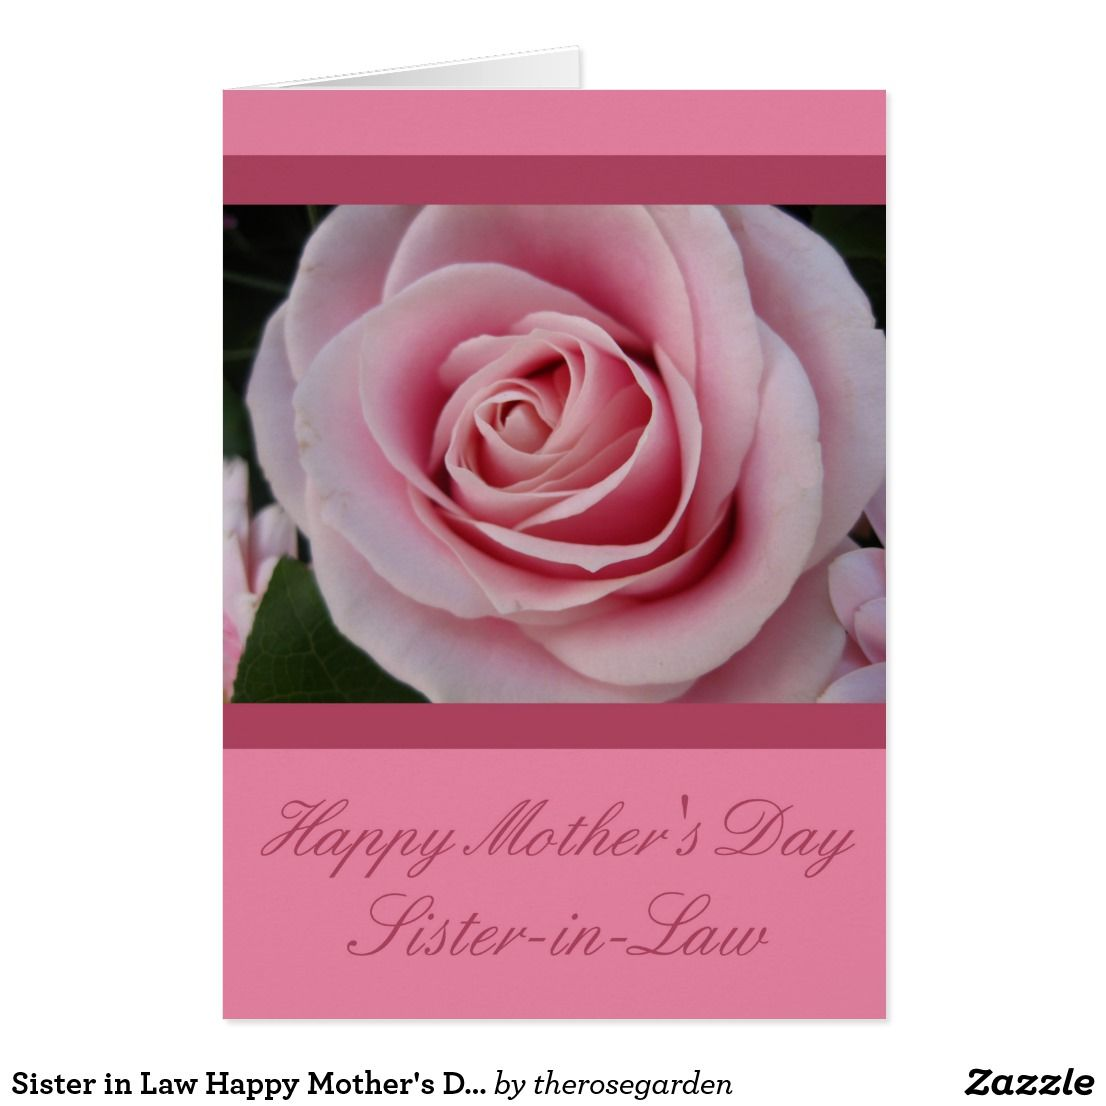 Radiant Sister Law Happy Day Rose Card Happy Mors Day Sister Love Happy Mors Day Sister Animated Images